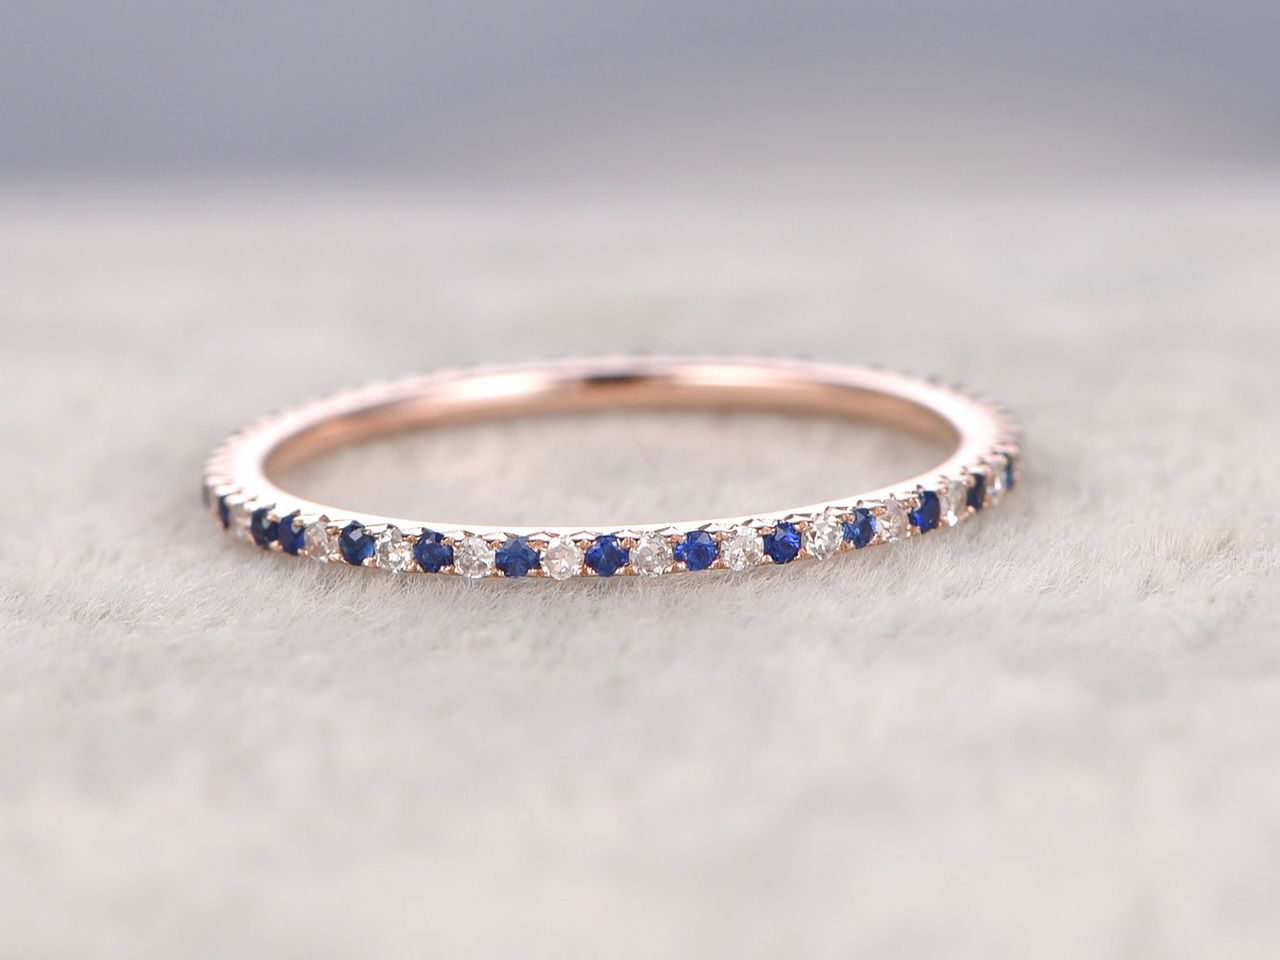 BBBGEM offers sapphire wedding rings,see our diamond wedding bands ...